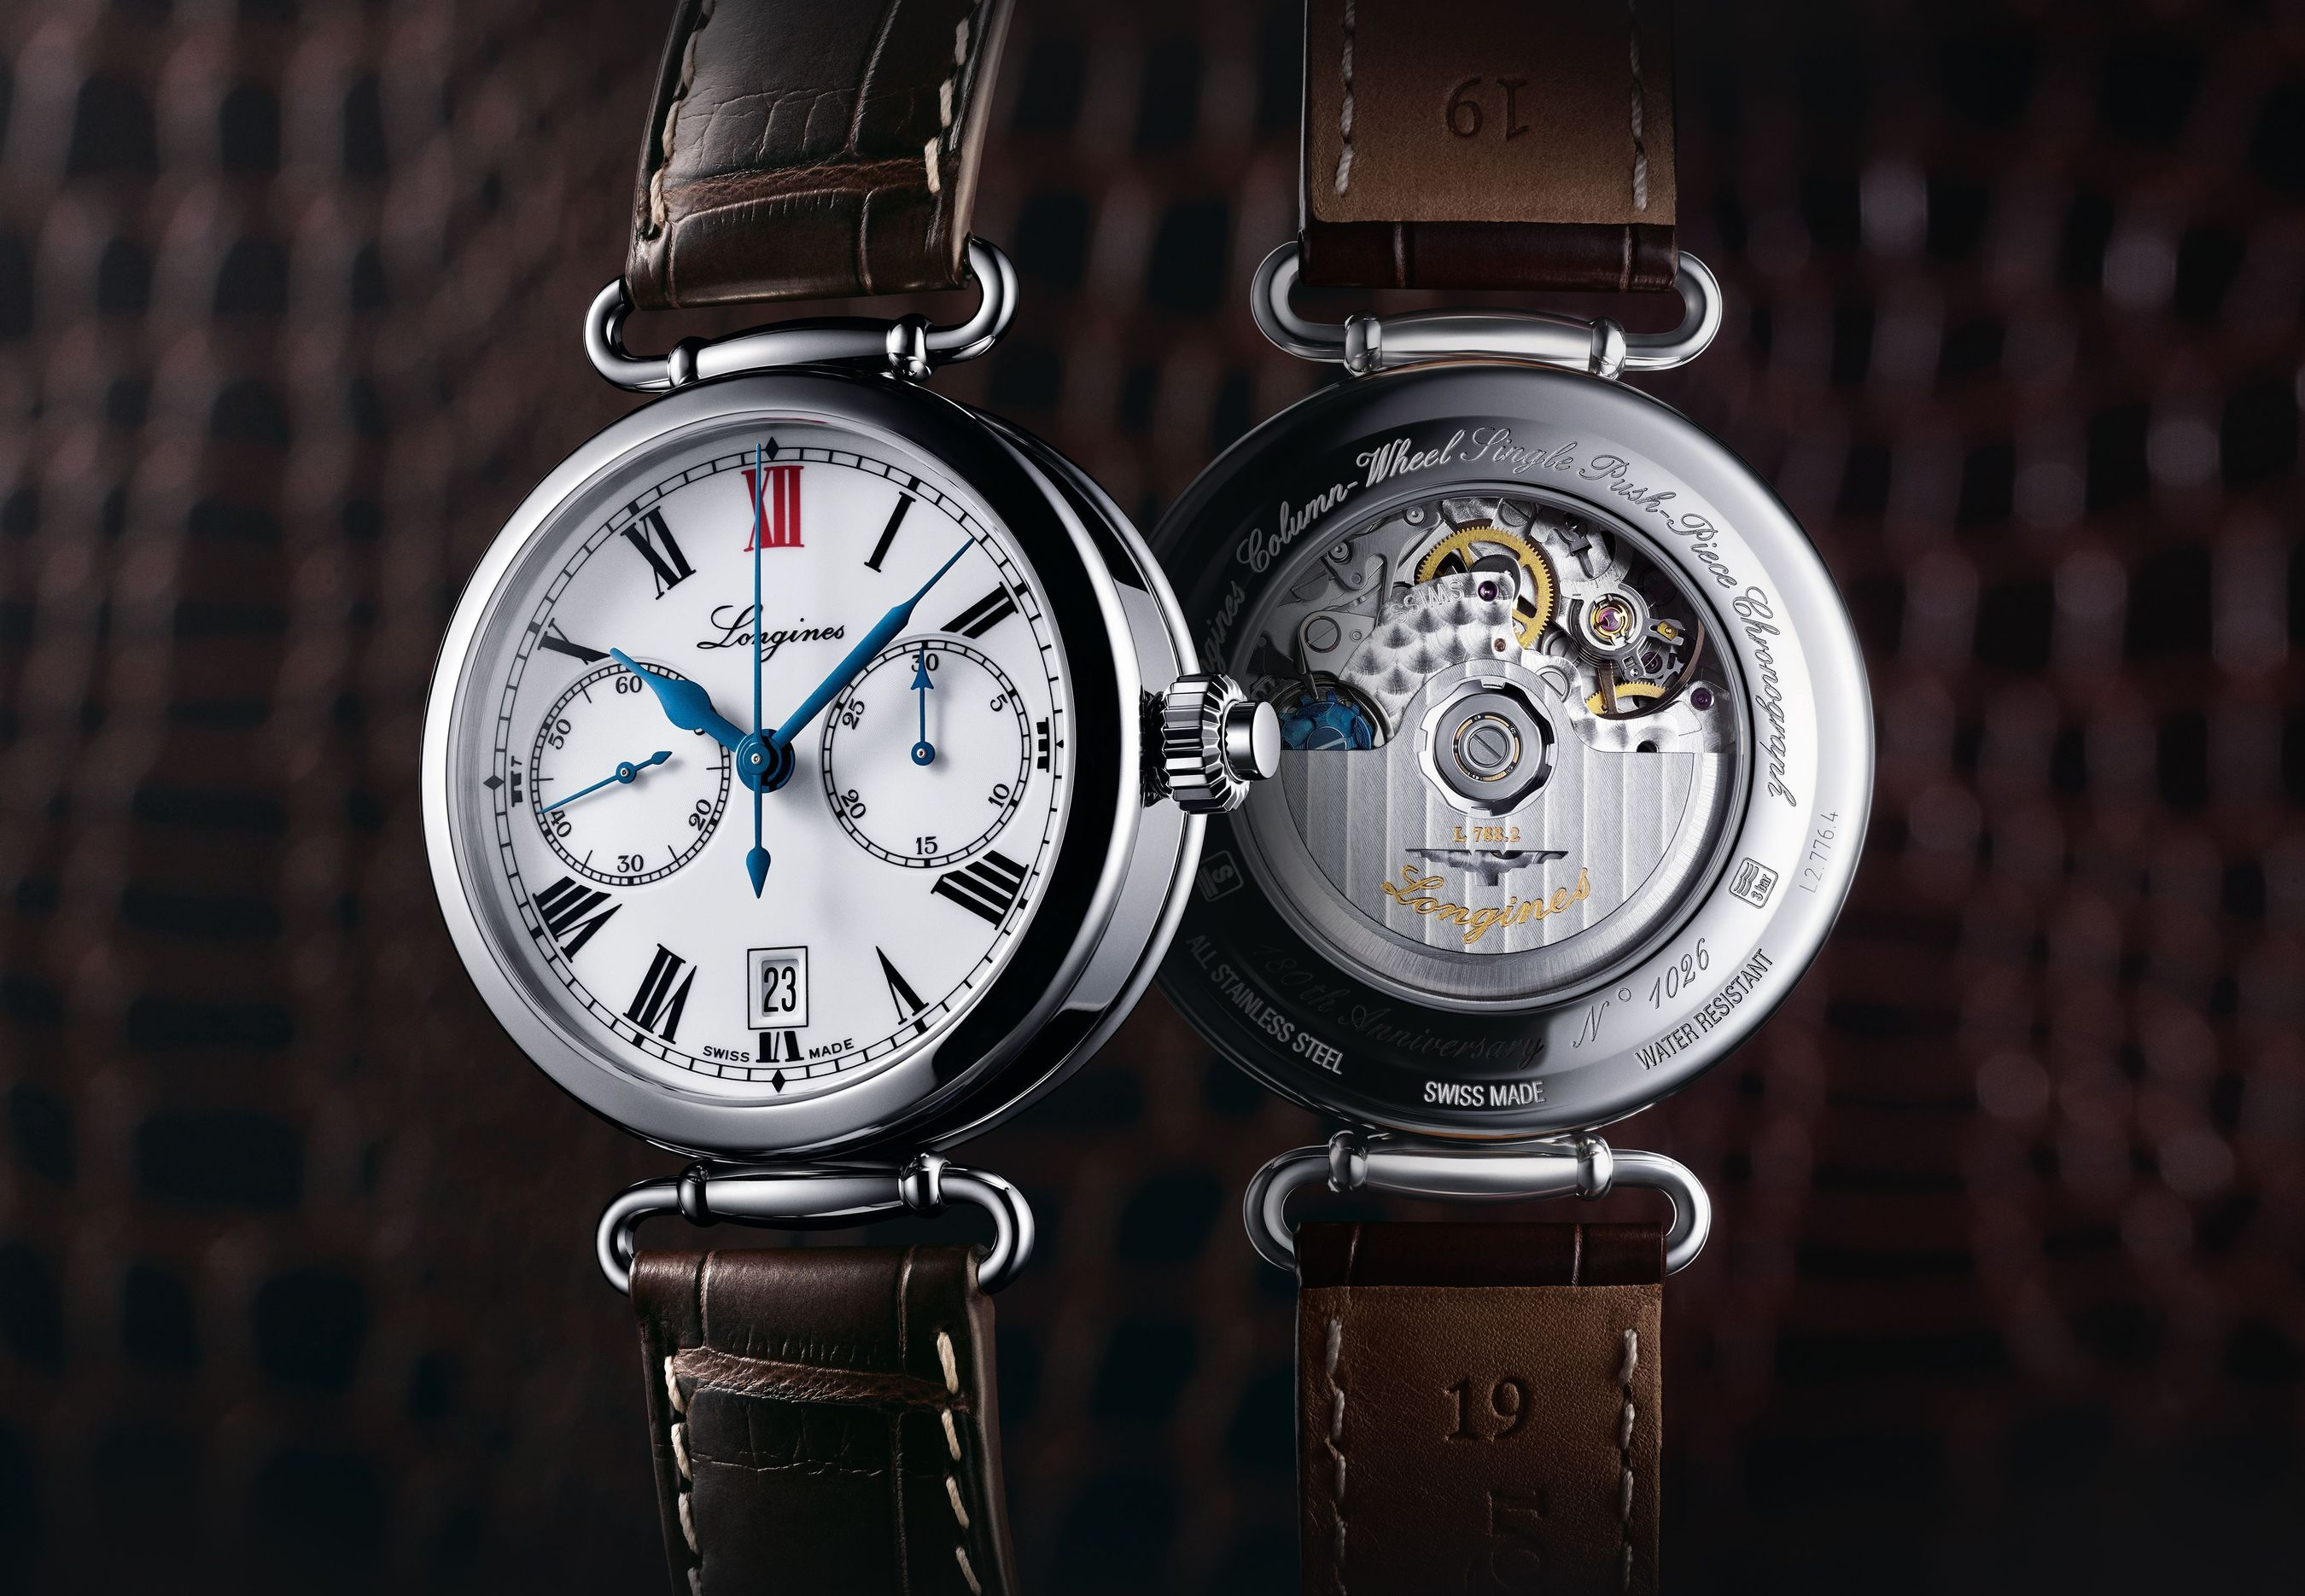 """The Longines Column-Wheel Single Push-Piece Chronograph models take their inspiration from the first chronograph wristwatches developed by Longines in 1913. This steel model is fitted with the L788 calibre, a column-wheel single push-piece chronograph movement developed by ETA exclusively for Longines. With its 40 mm diameter, its case is fitted with moving lugs. The white dial features black Roman numerals and a red """"XII"""", a small seconds at 9 o'clock and a 30-minute counter at 3 o'clock. The date aperture is situated at 6 o'clock. Blued hands harmoniously complete this timepiece, which comes with a brown alligator strap. (PRNewsFoto/Longines)"""